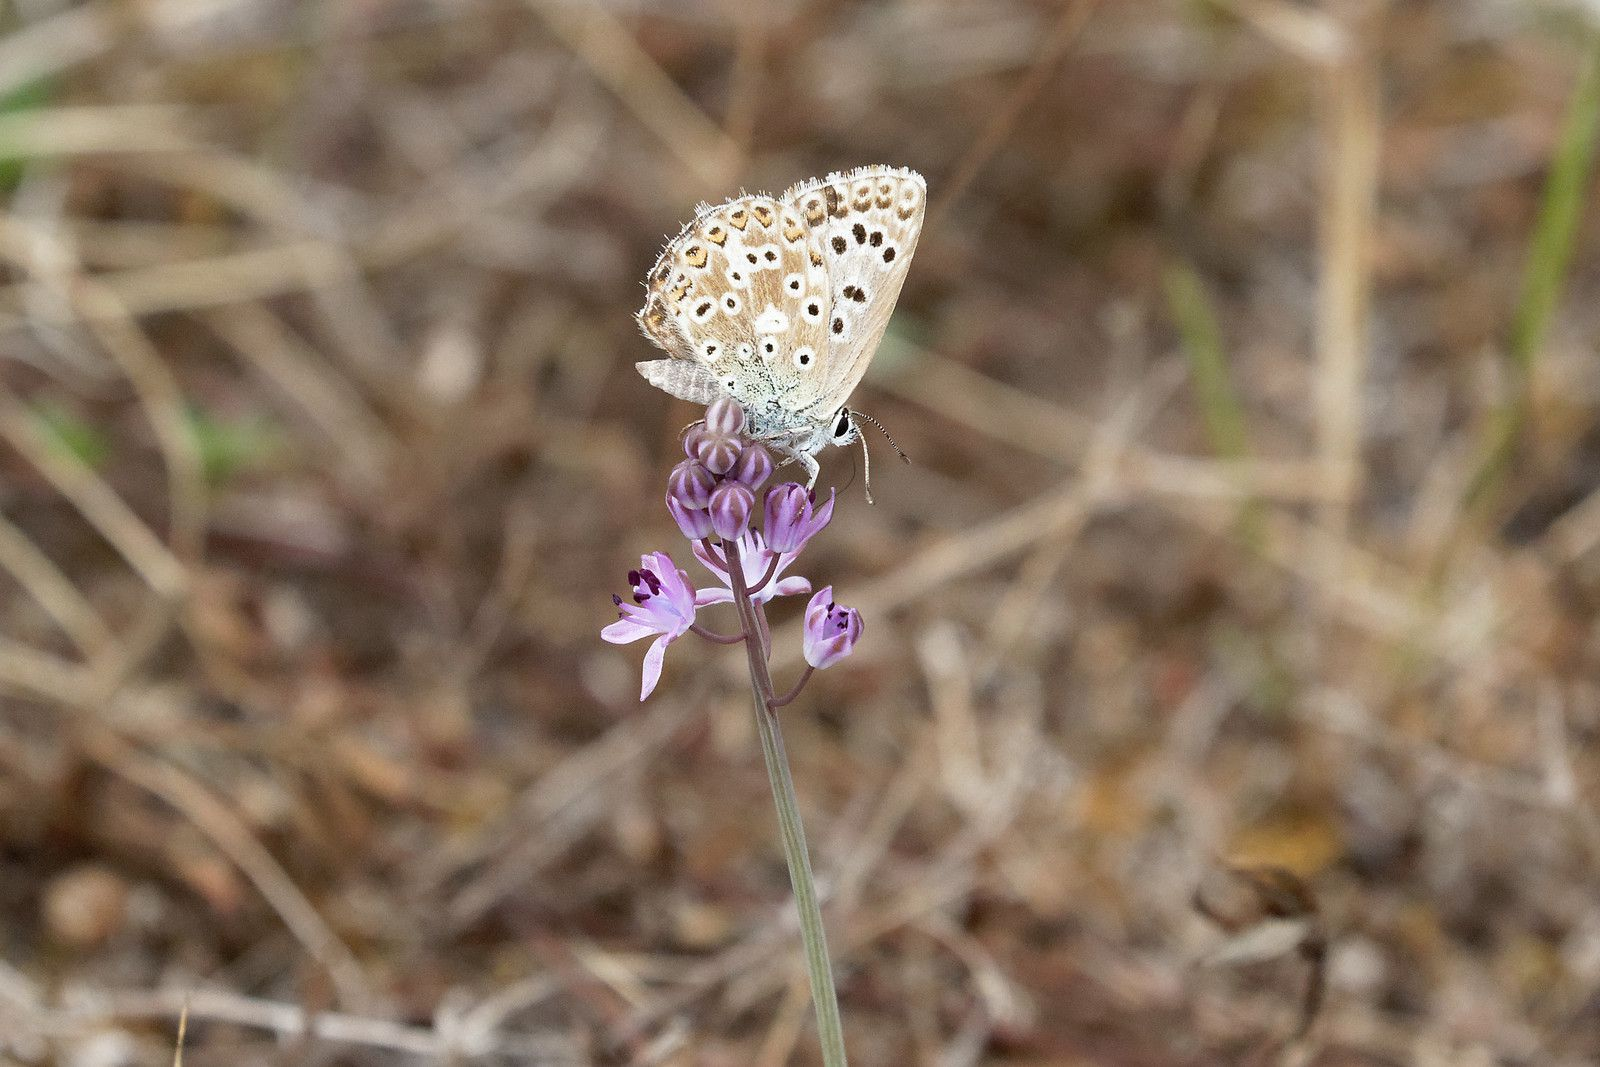 Argus bleu-céleste (Lysandra bellargus), possible